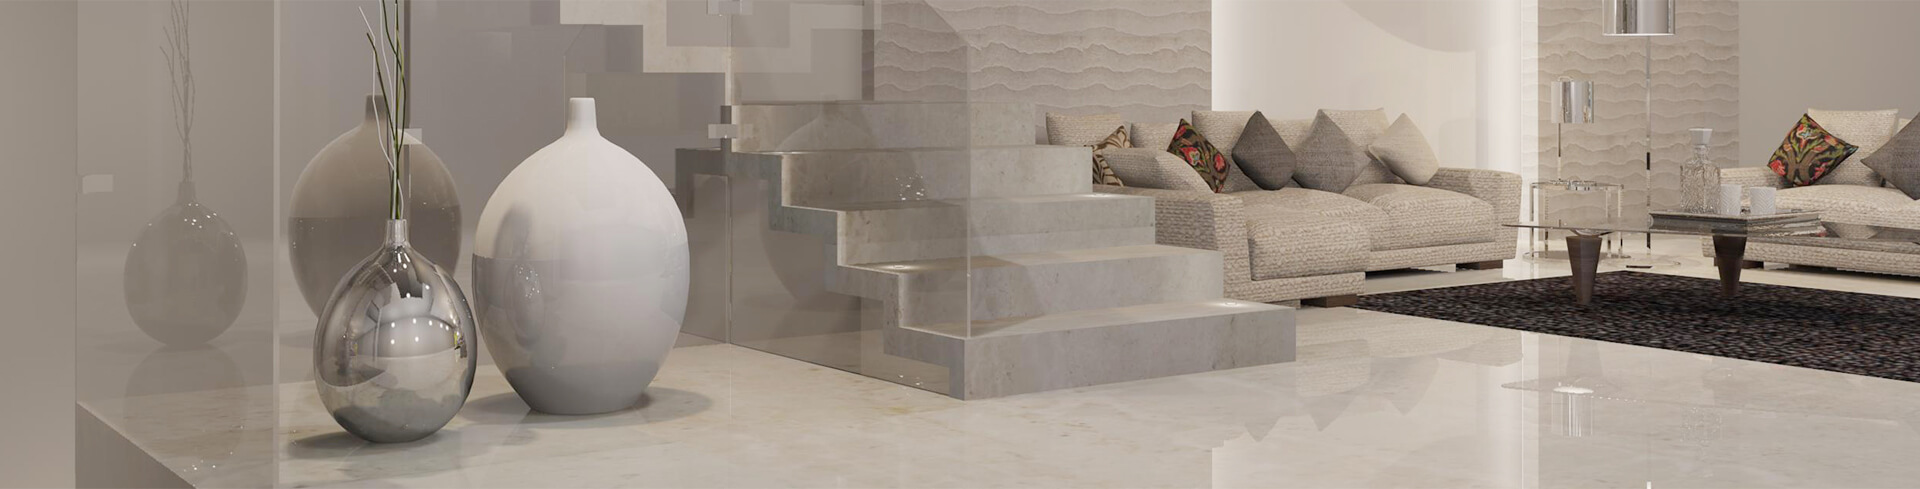 The King Of Indian Marble-Bhandari Marble Group